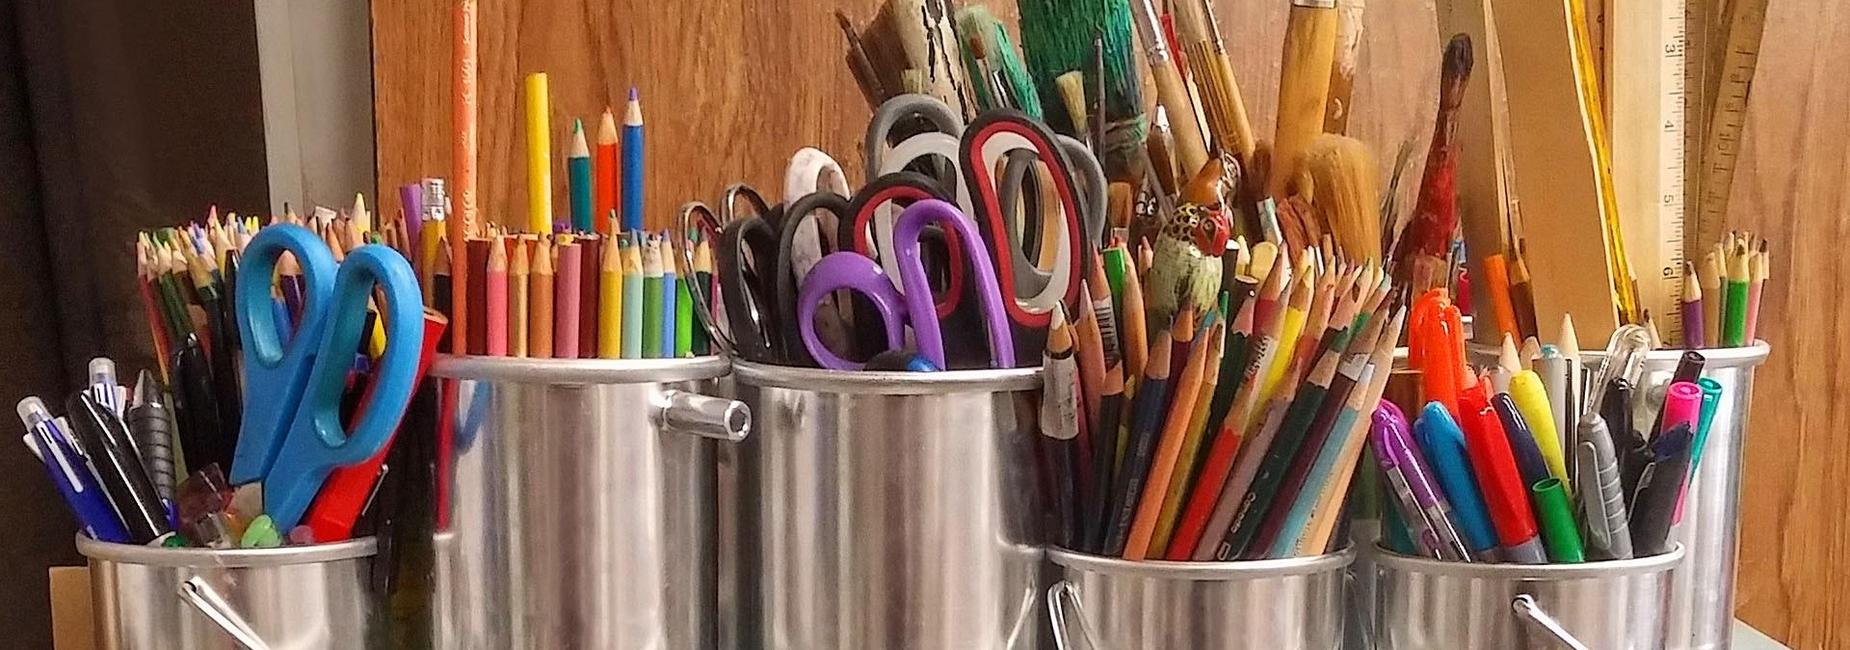 Stock photo with pencils and pens